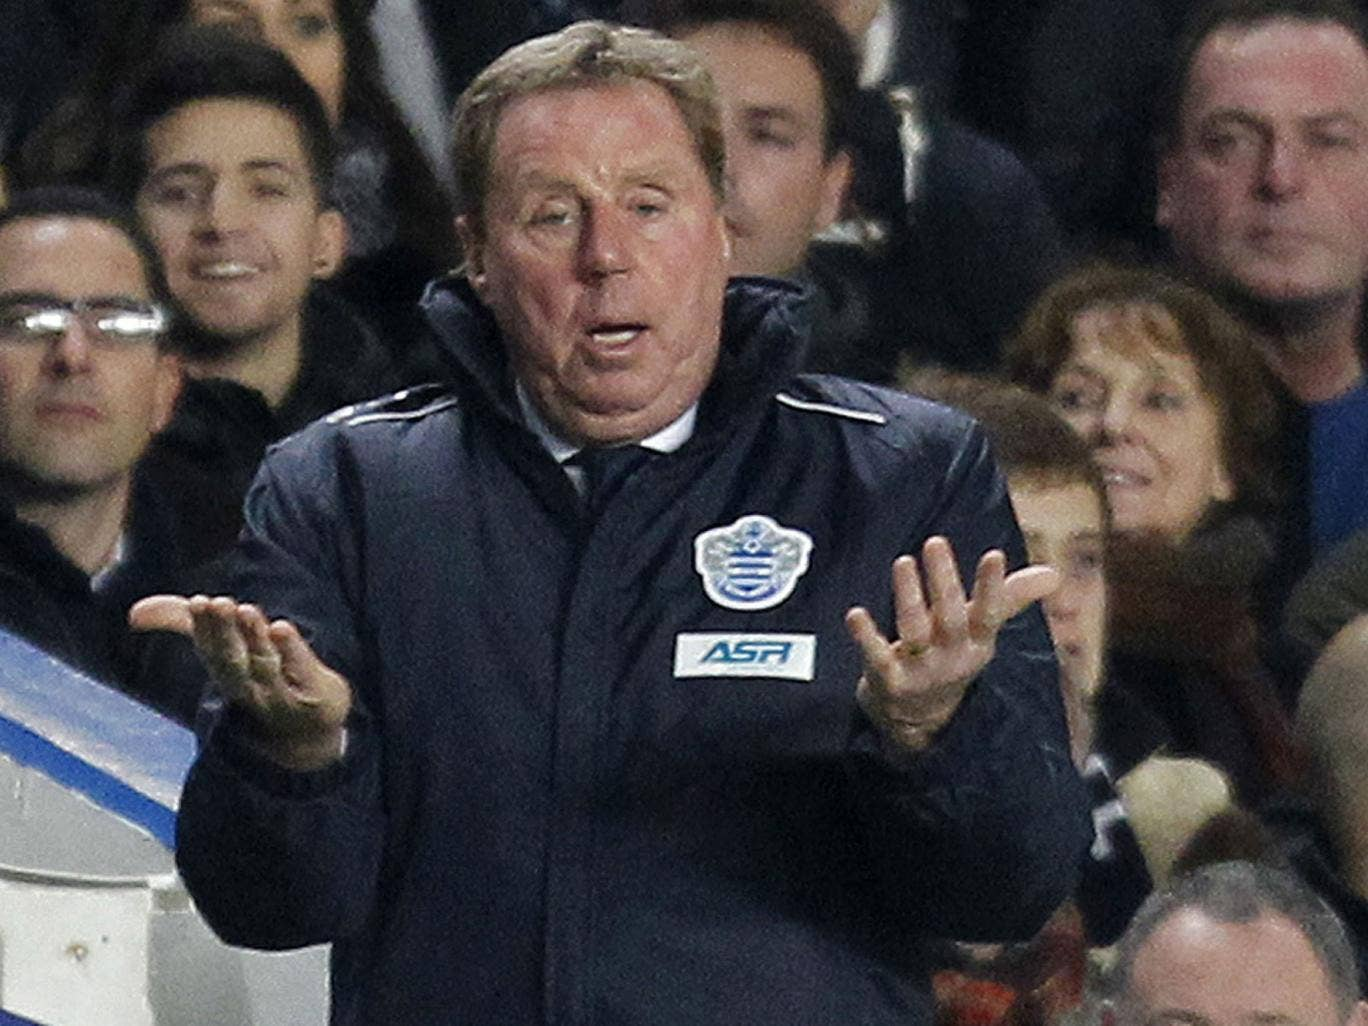 Harry Redknapp expressed his wish for Samba a month ago